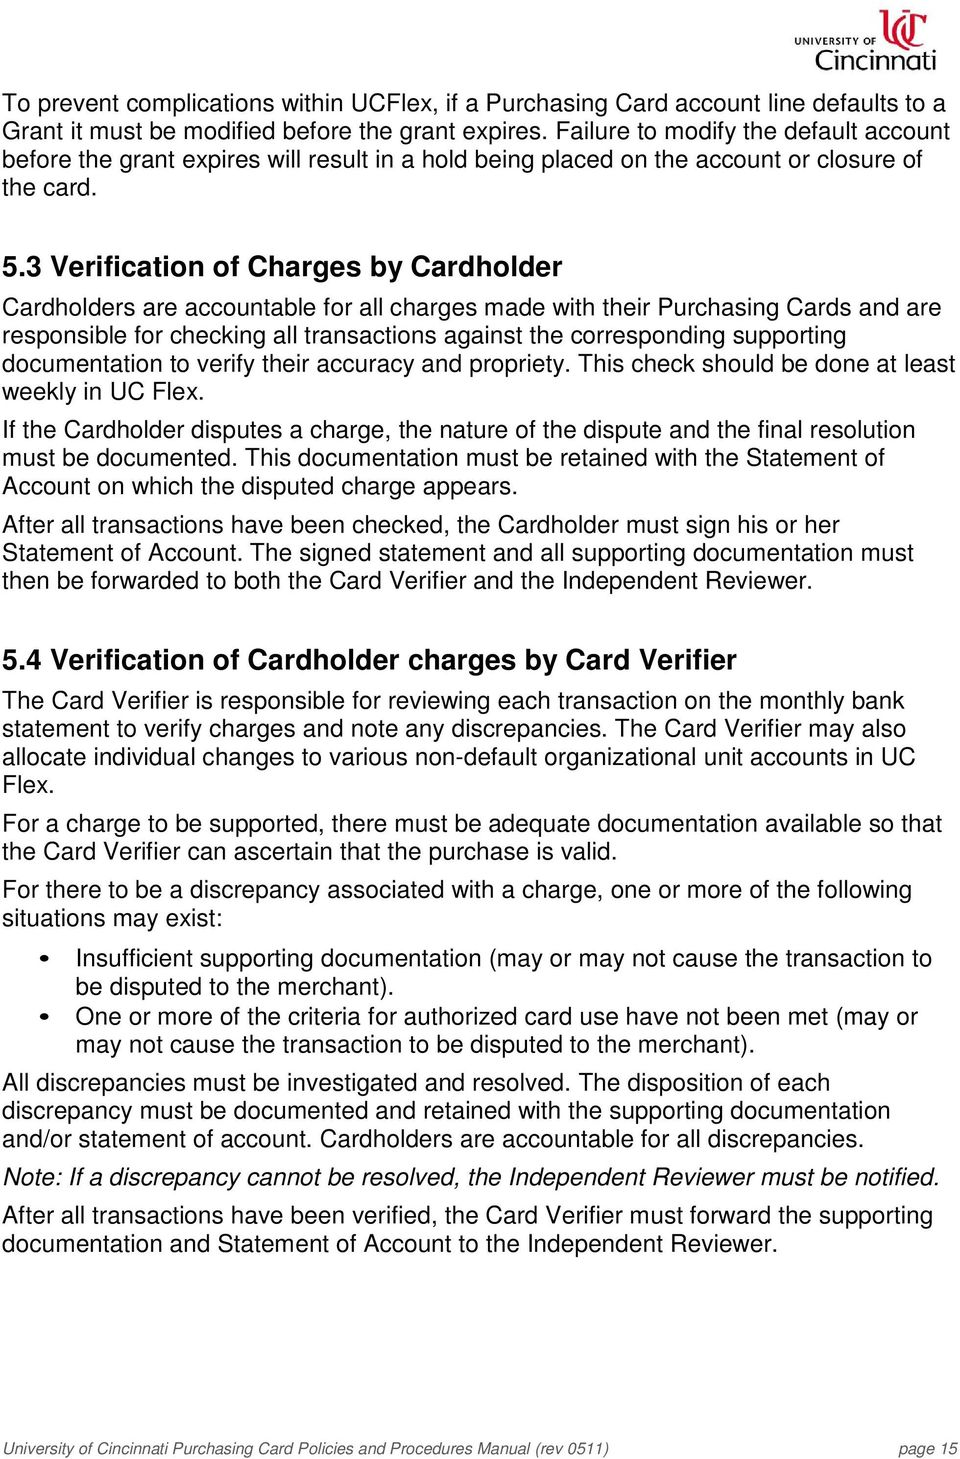 3 Verification of Charges by Cardholder Cardholders are accountable for all charges made with their Purchasing Cards and are responsible for checking all transactions against the corresponding